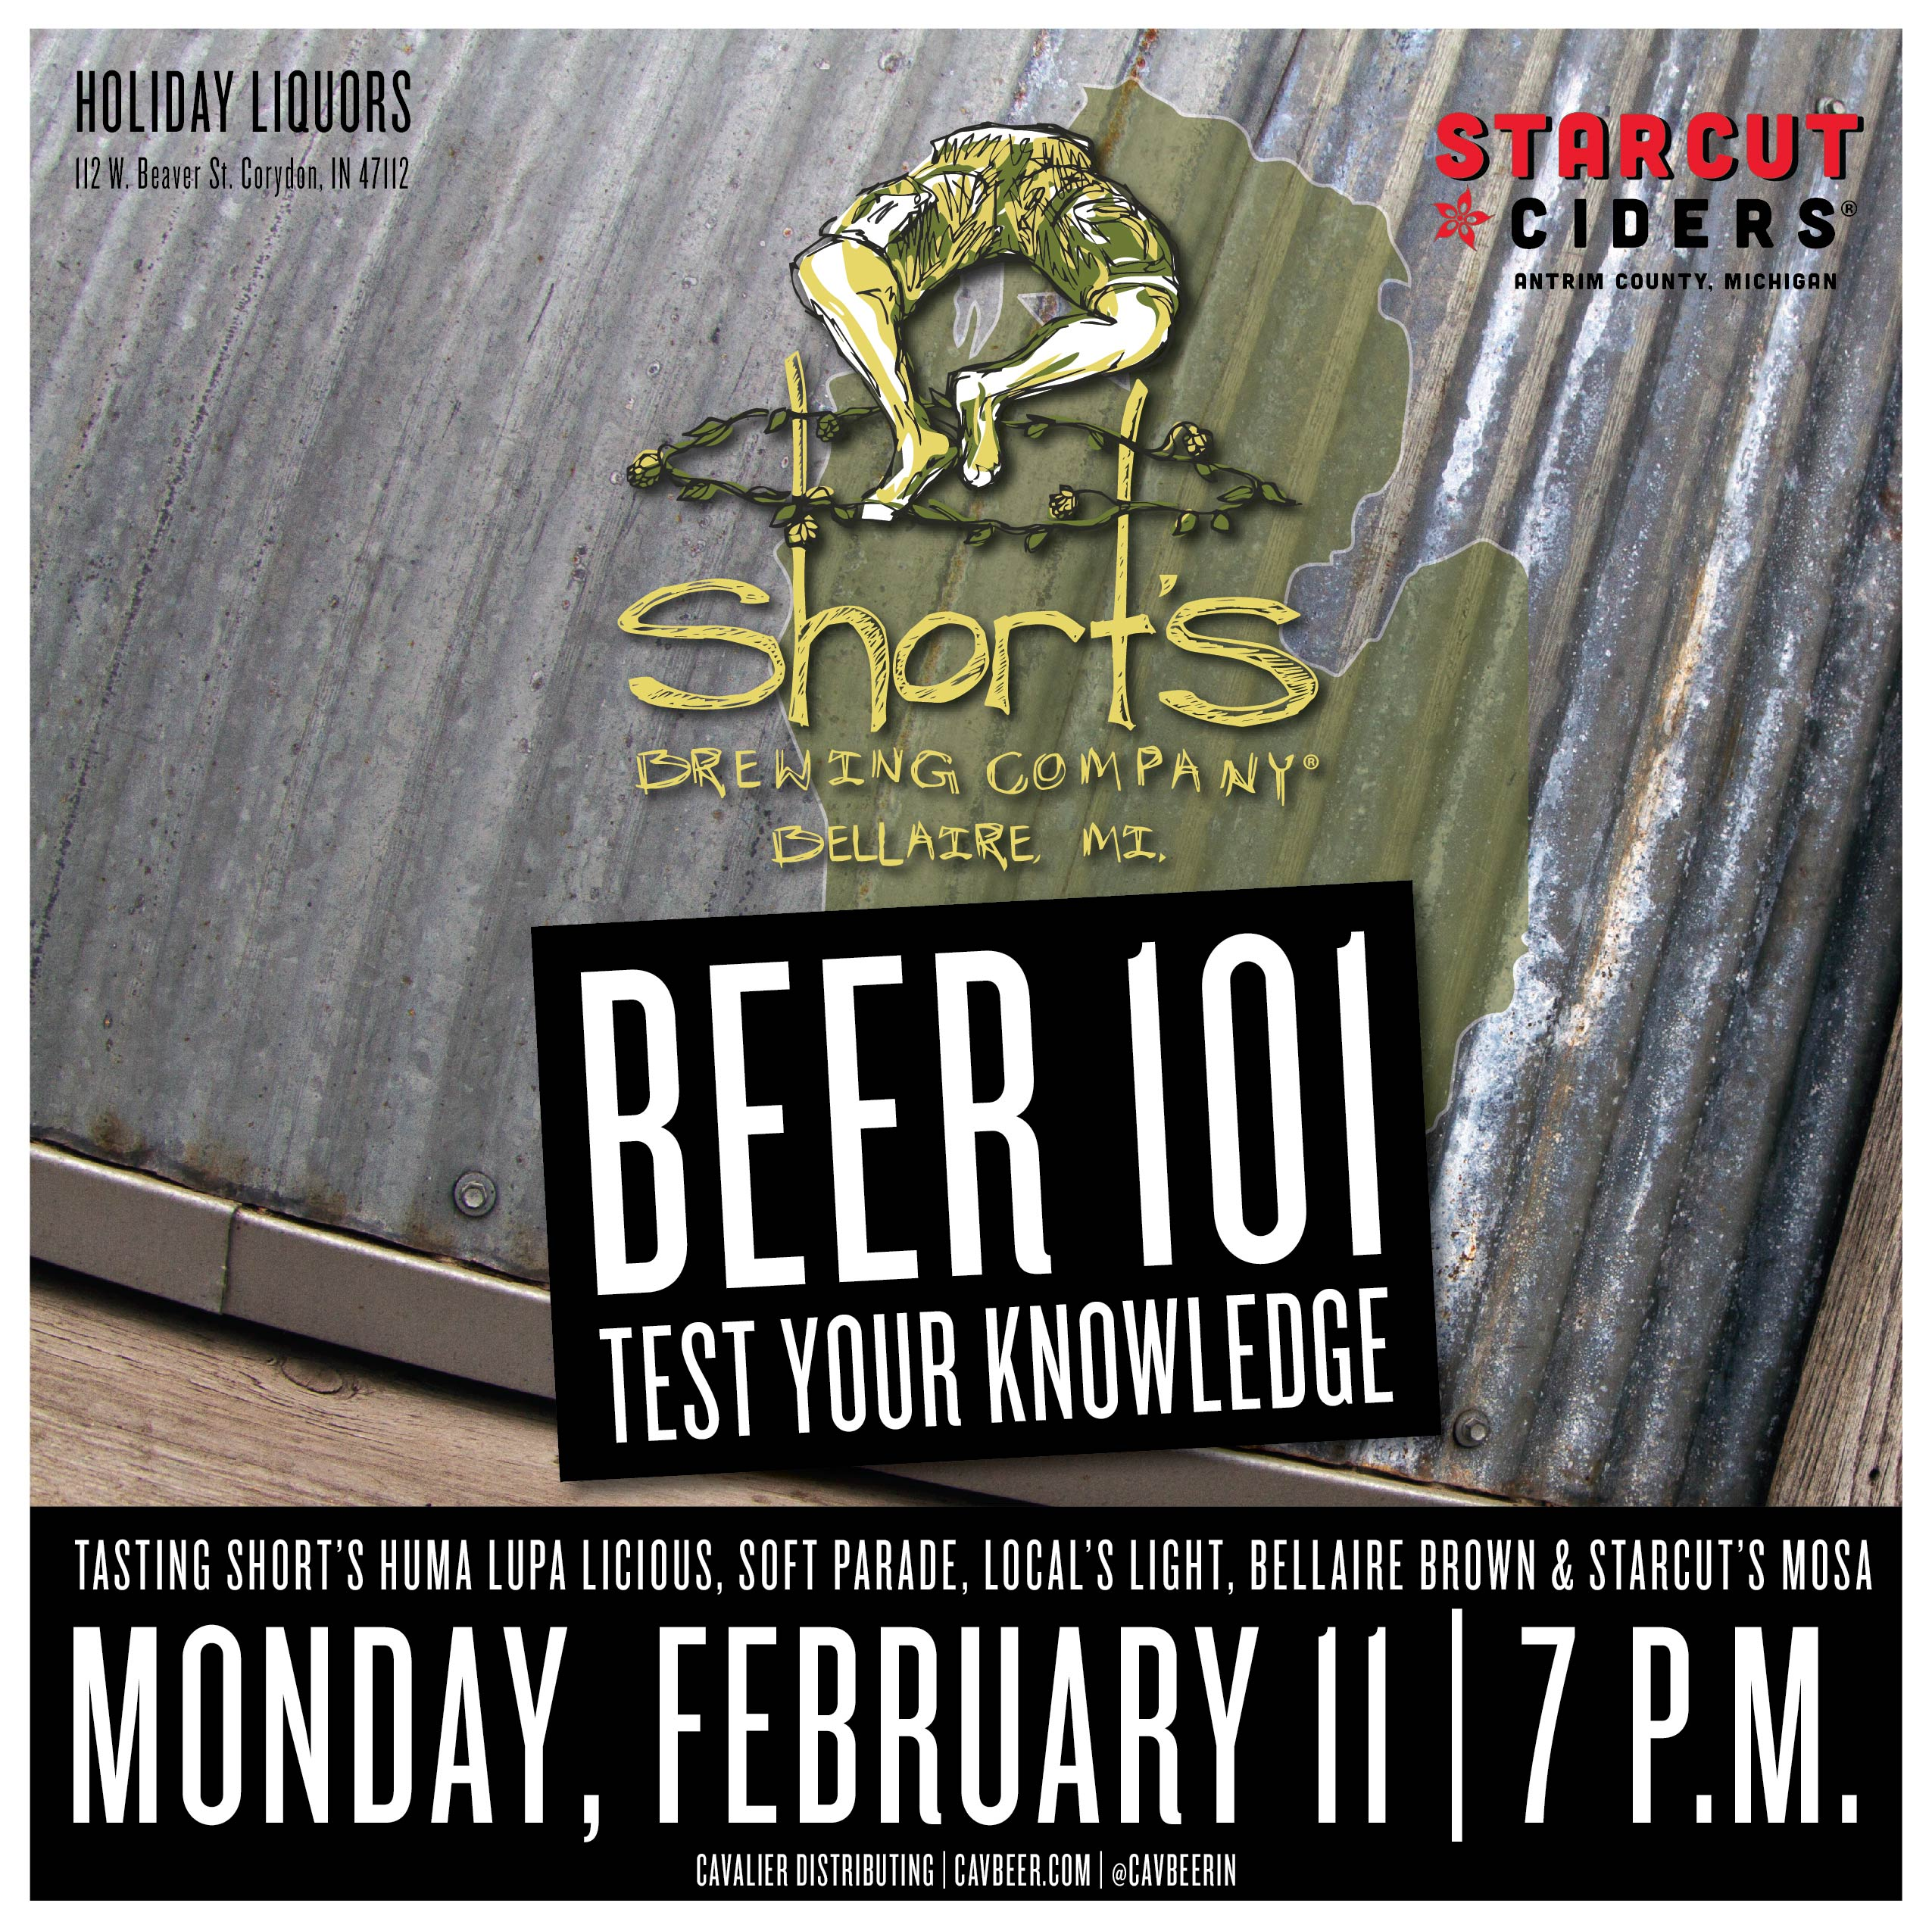 Beer 101 with Short's Brewing & Starcut Ciders @ Holiday Liquors